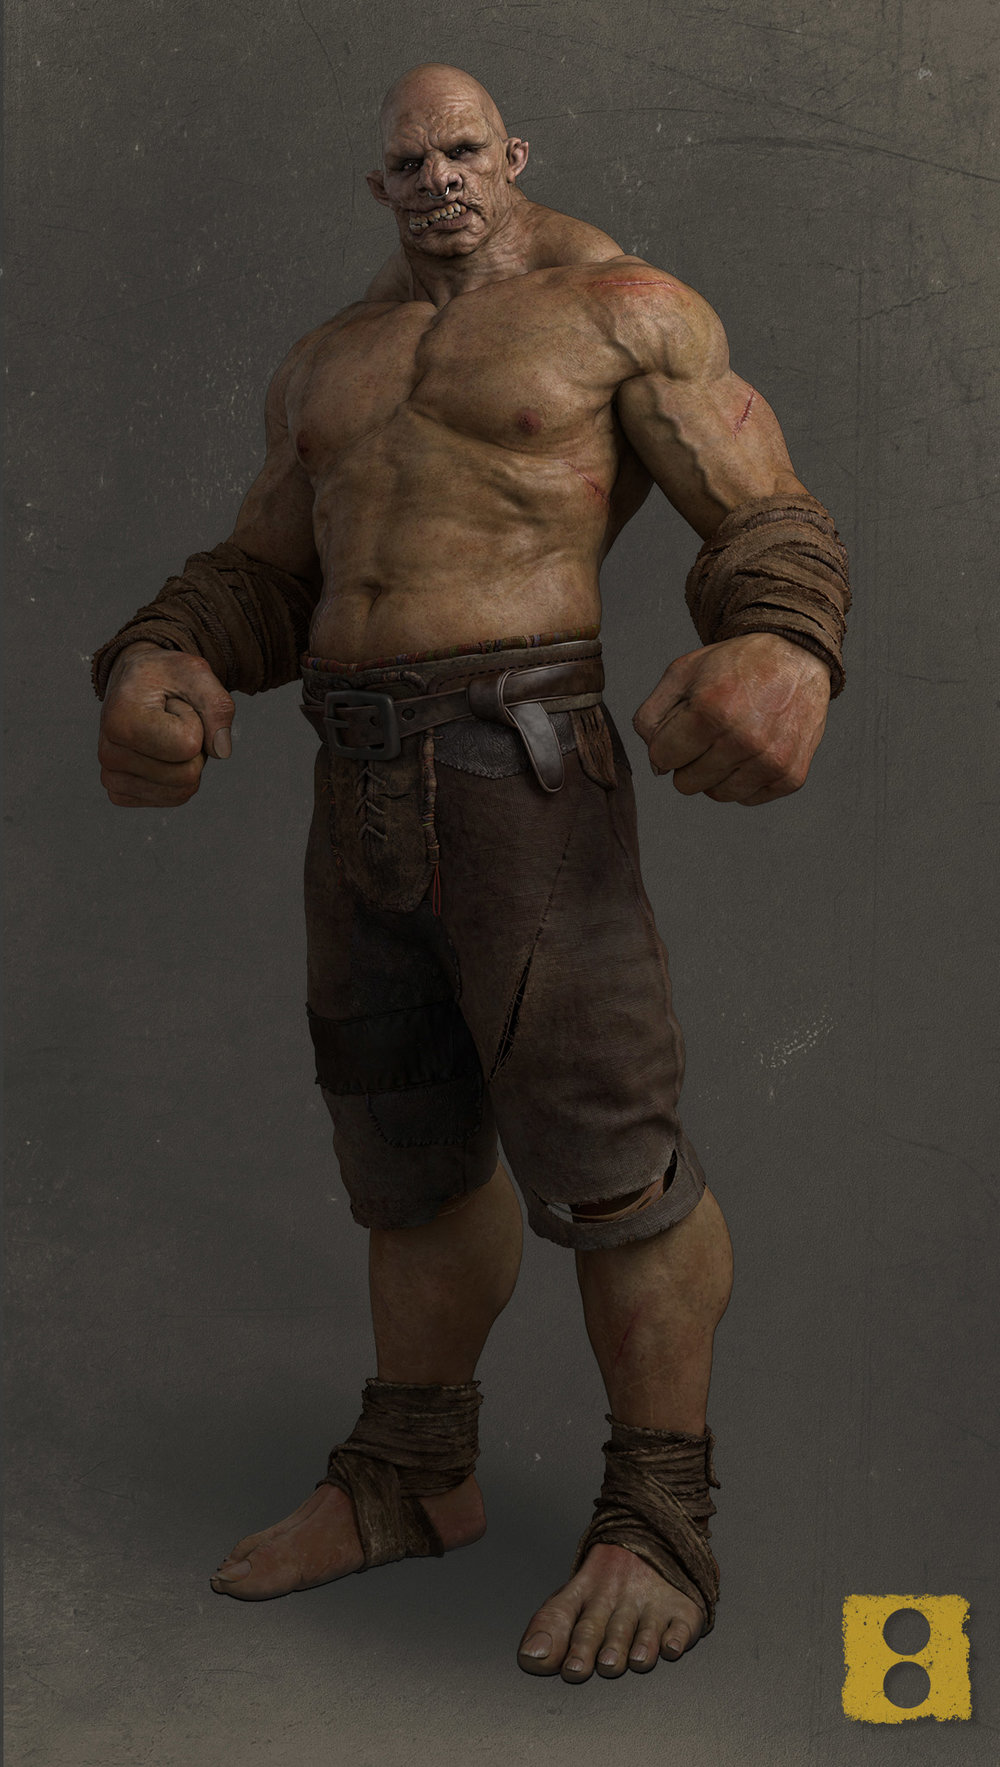 A brooding, hulking giant of a fighter, who has been a part of the UFC. Starting out as a 12 year, Gutt made a name for himself for his tenacity and courage to fight bigger,badder opponents.Now in his mid 40s he has lost none of that ferocity and tenacity. This is what has made him a legend in the UFC scene. This is what makes him Gutt.